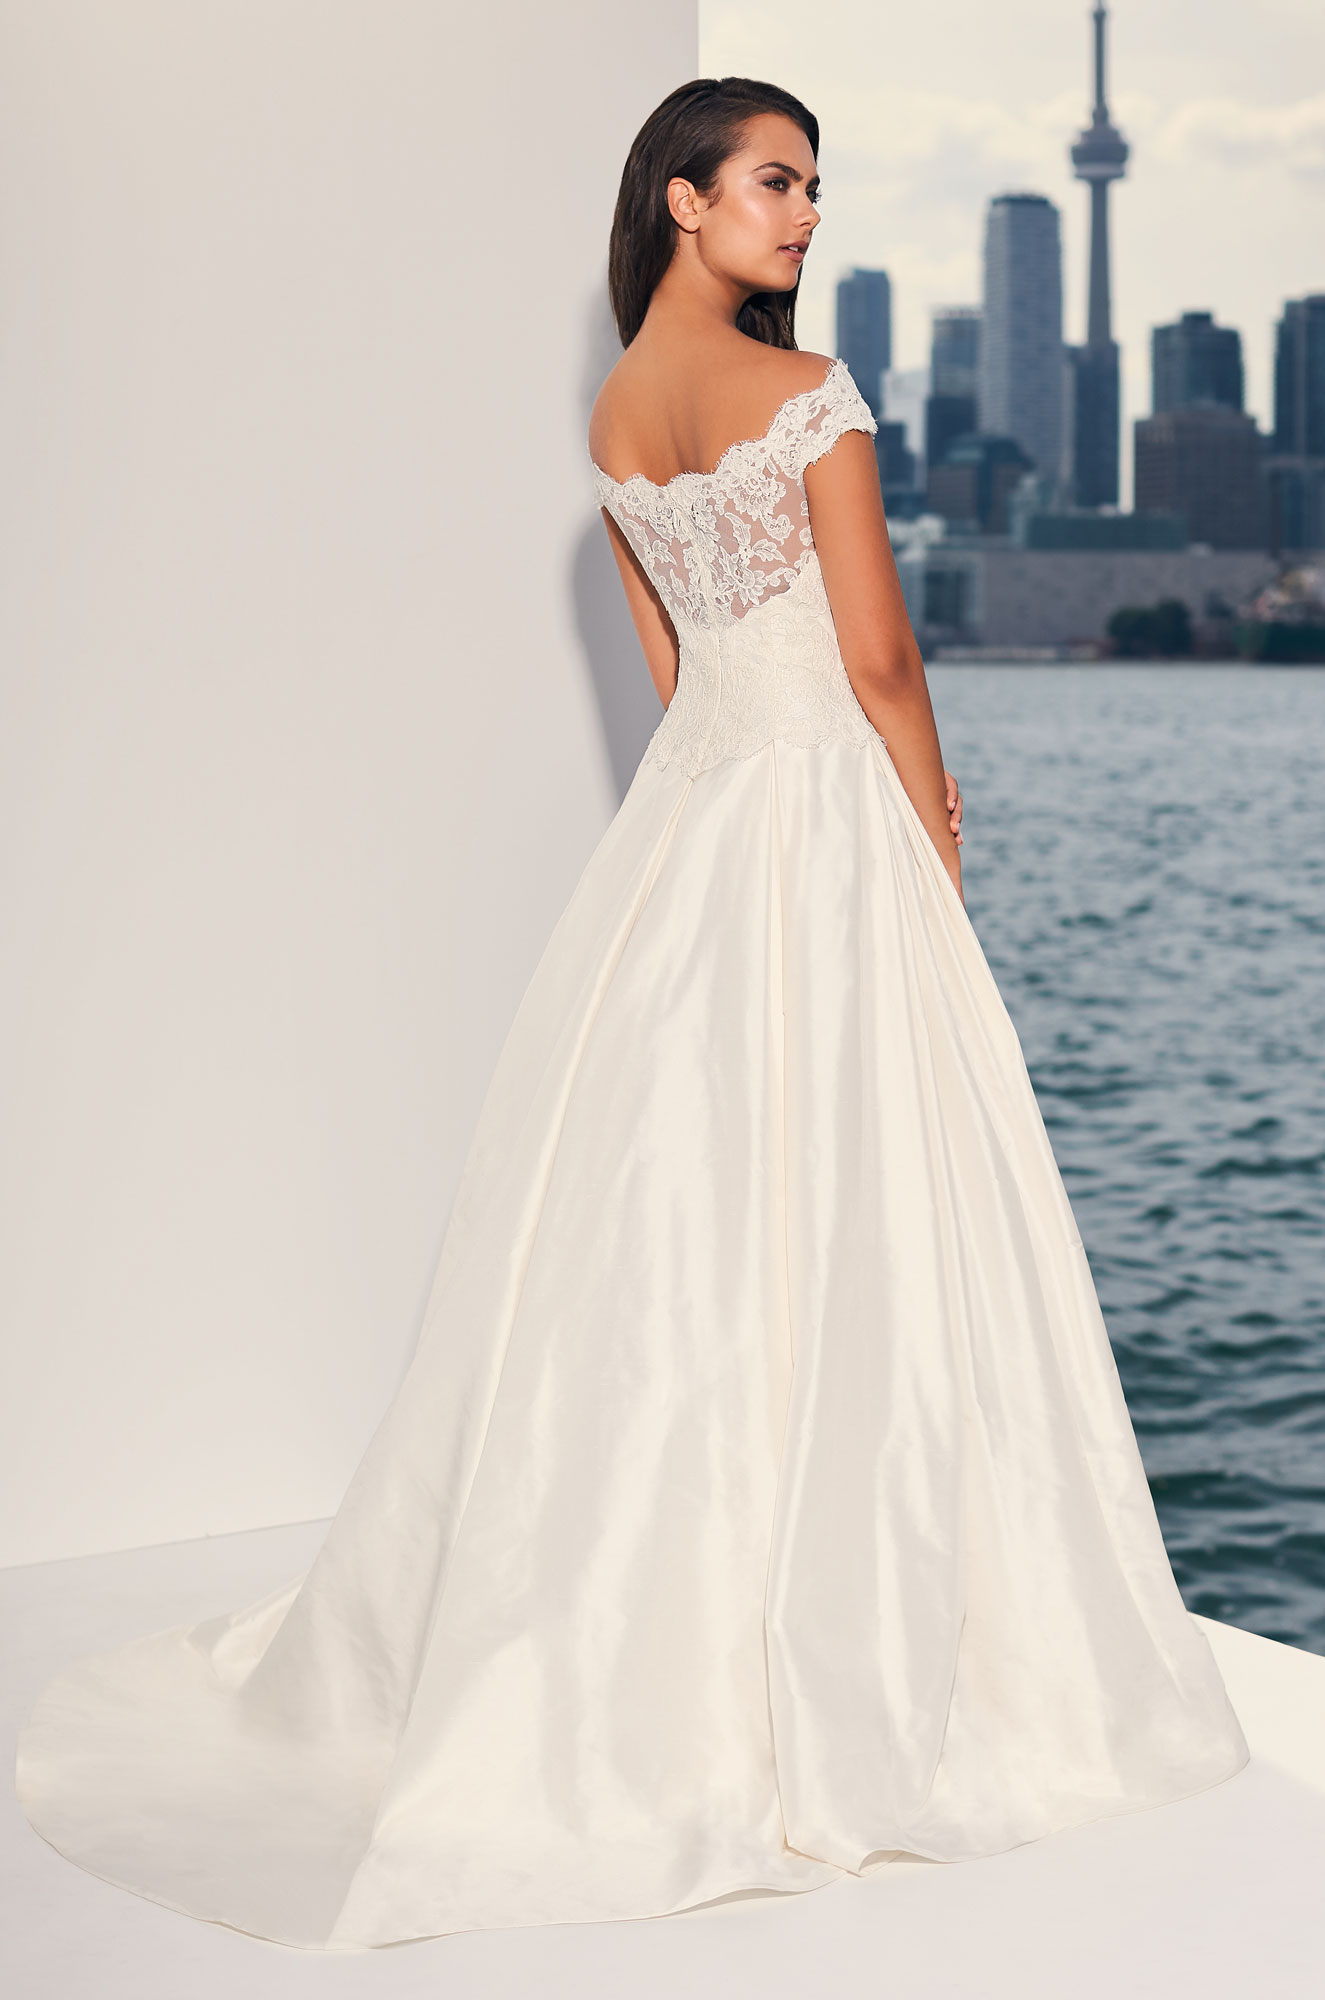 Dropped Waist Silk Wedding Dress - Style #4842 | Paloma Blanca